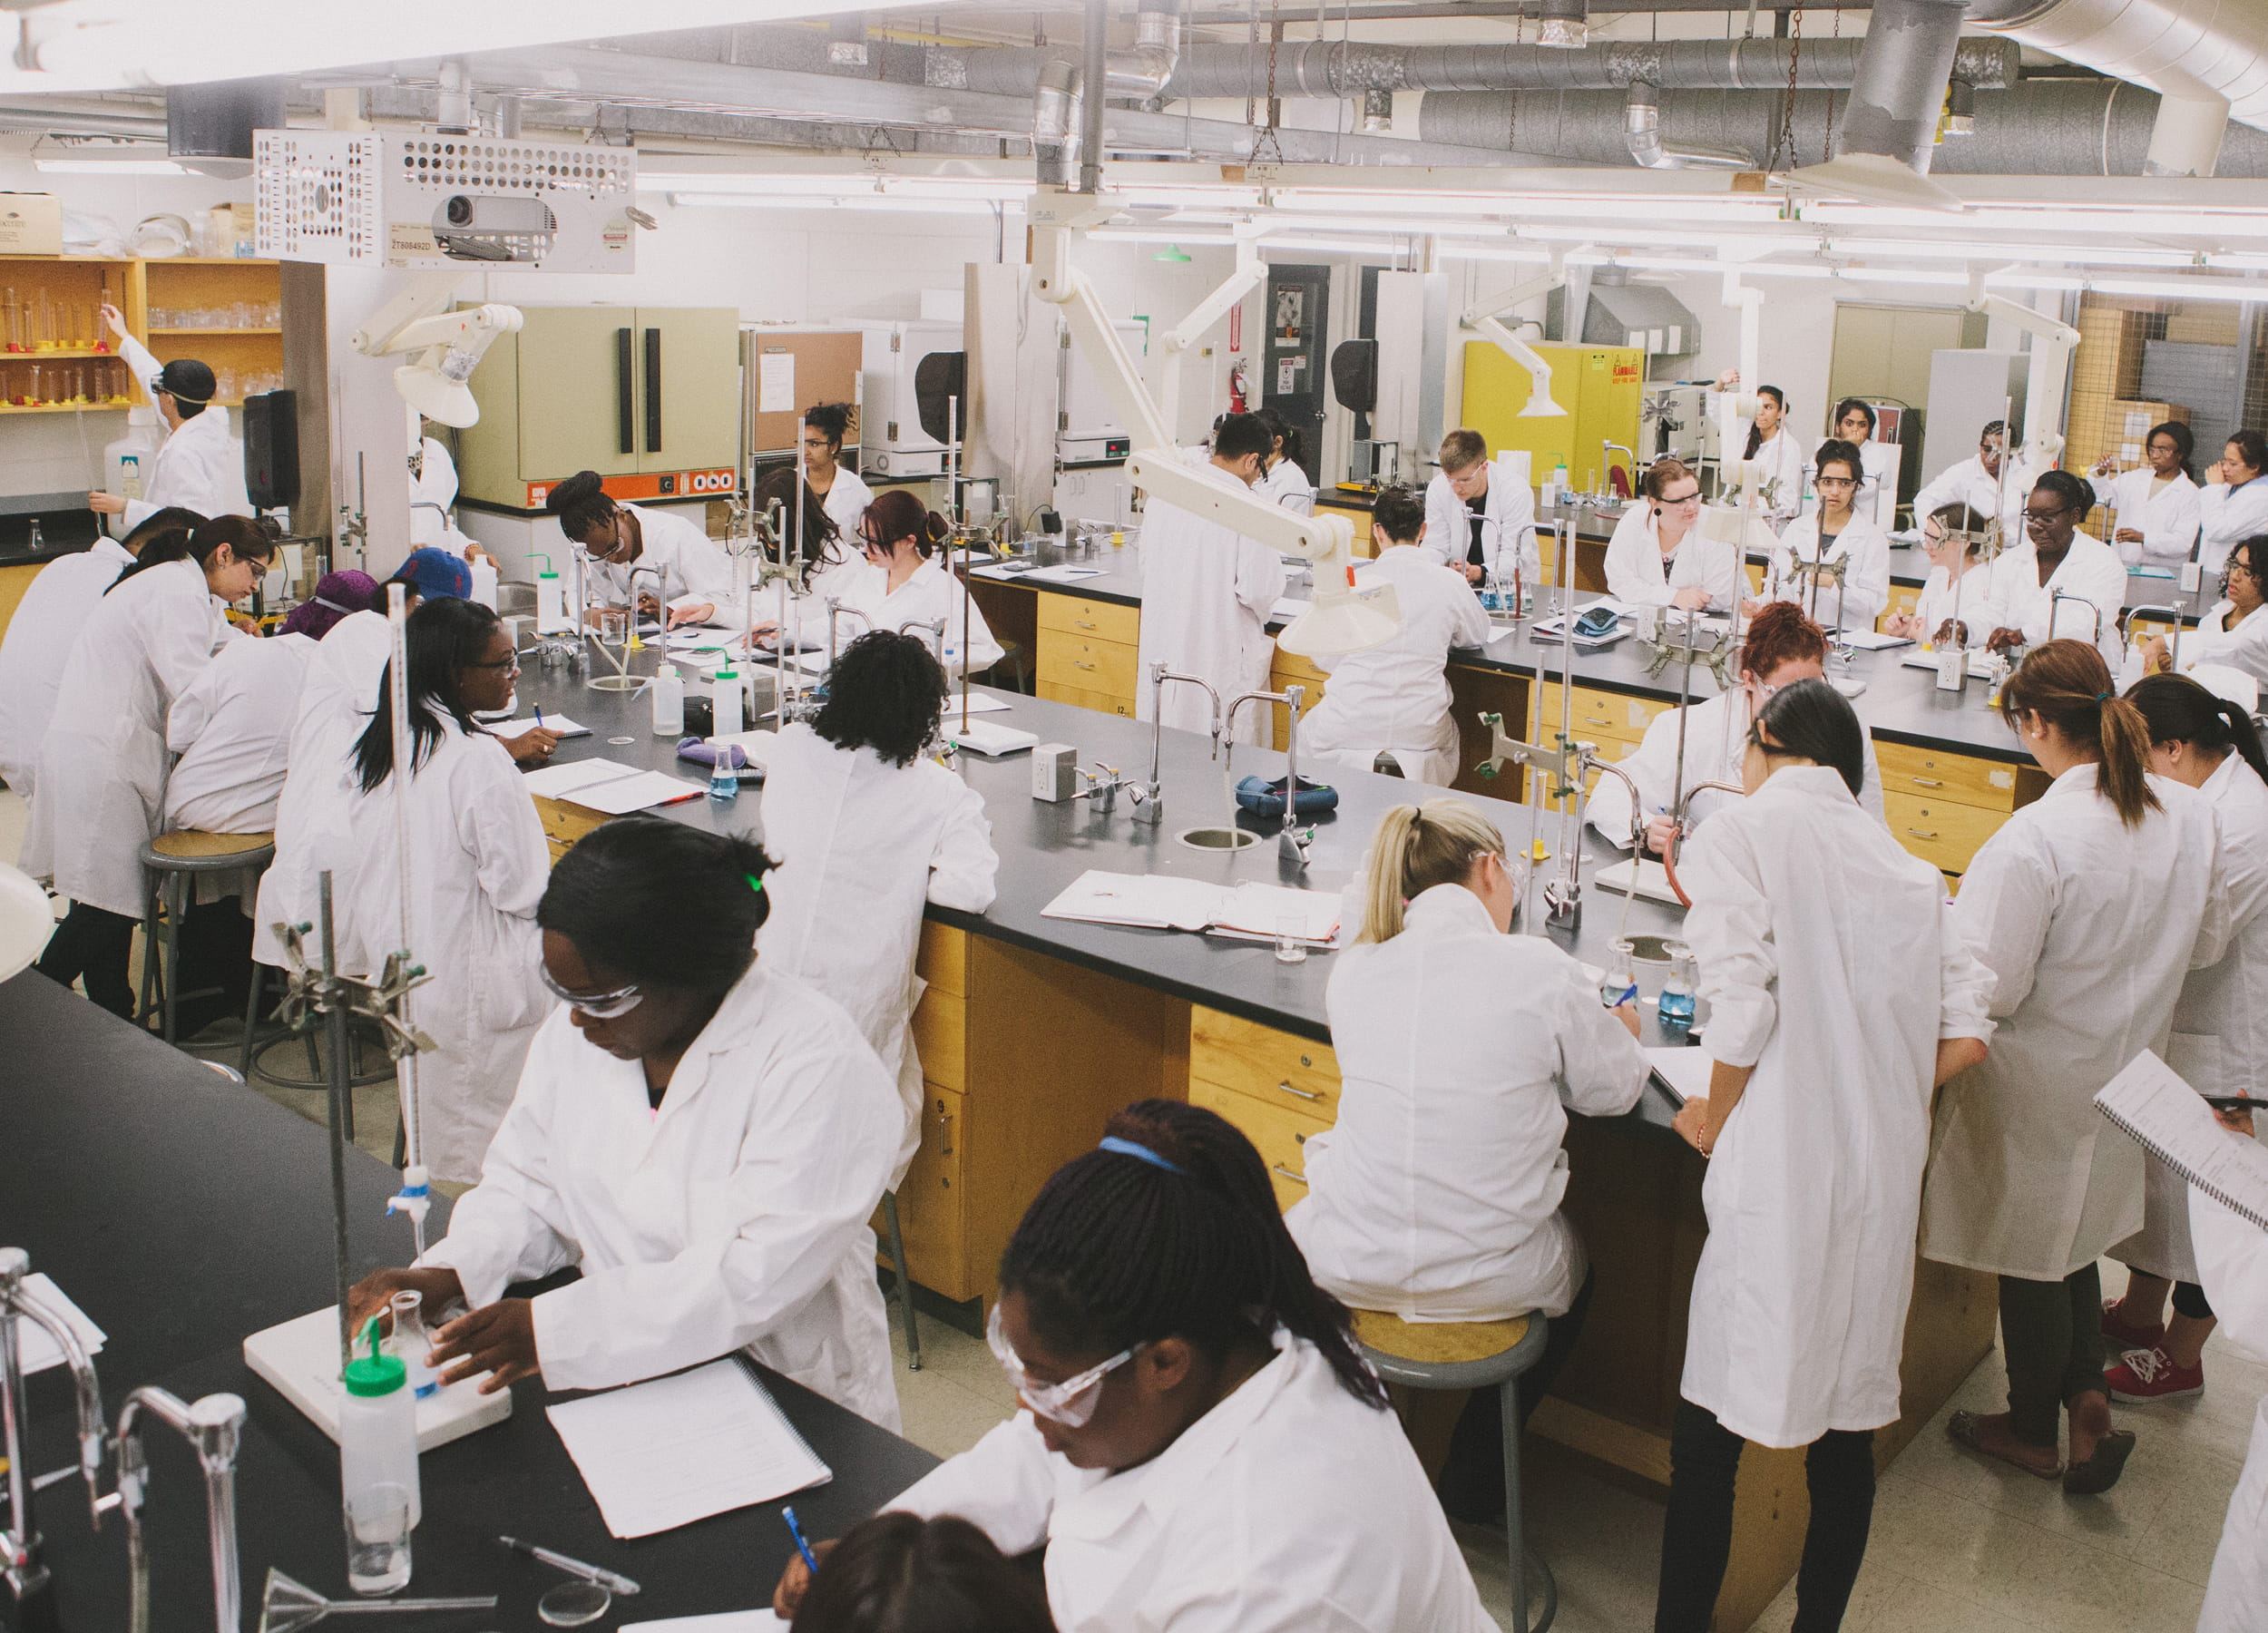 Chemical Laboratory Technician students in a classroom